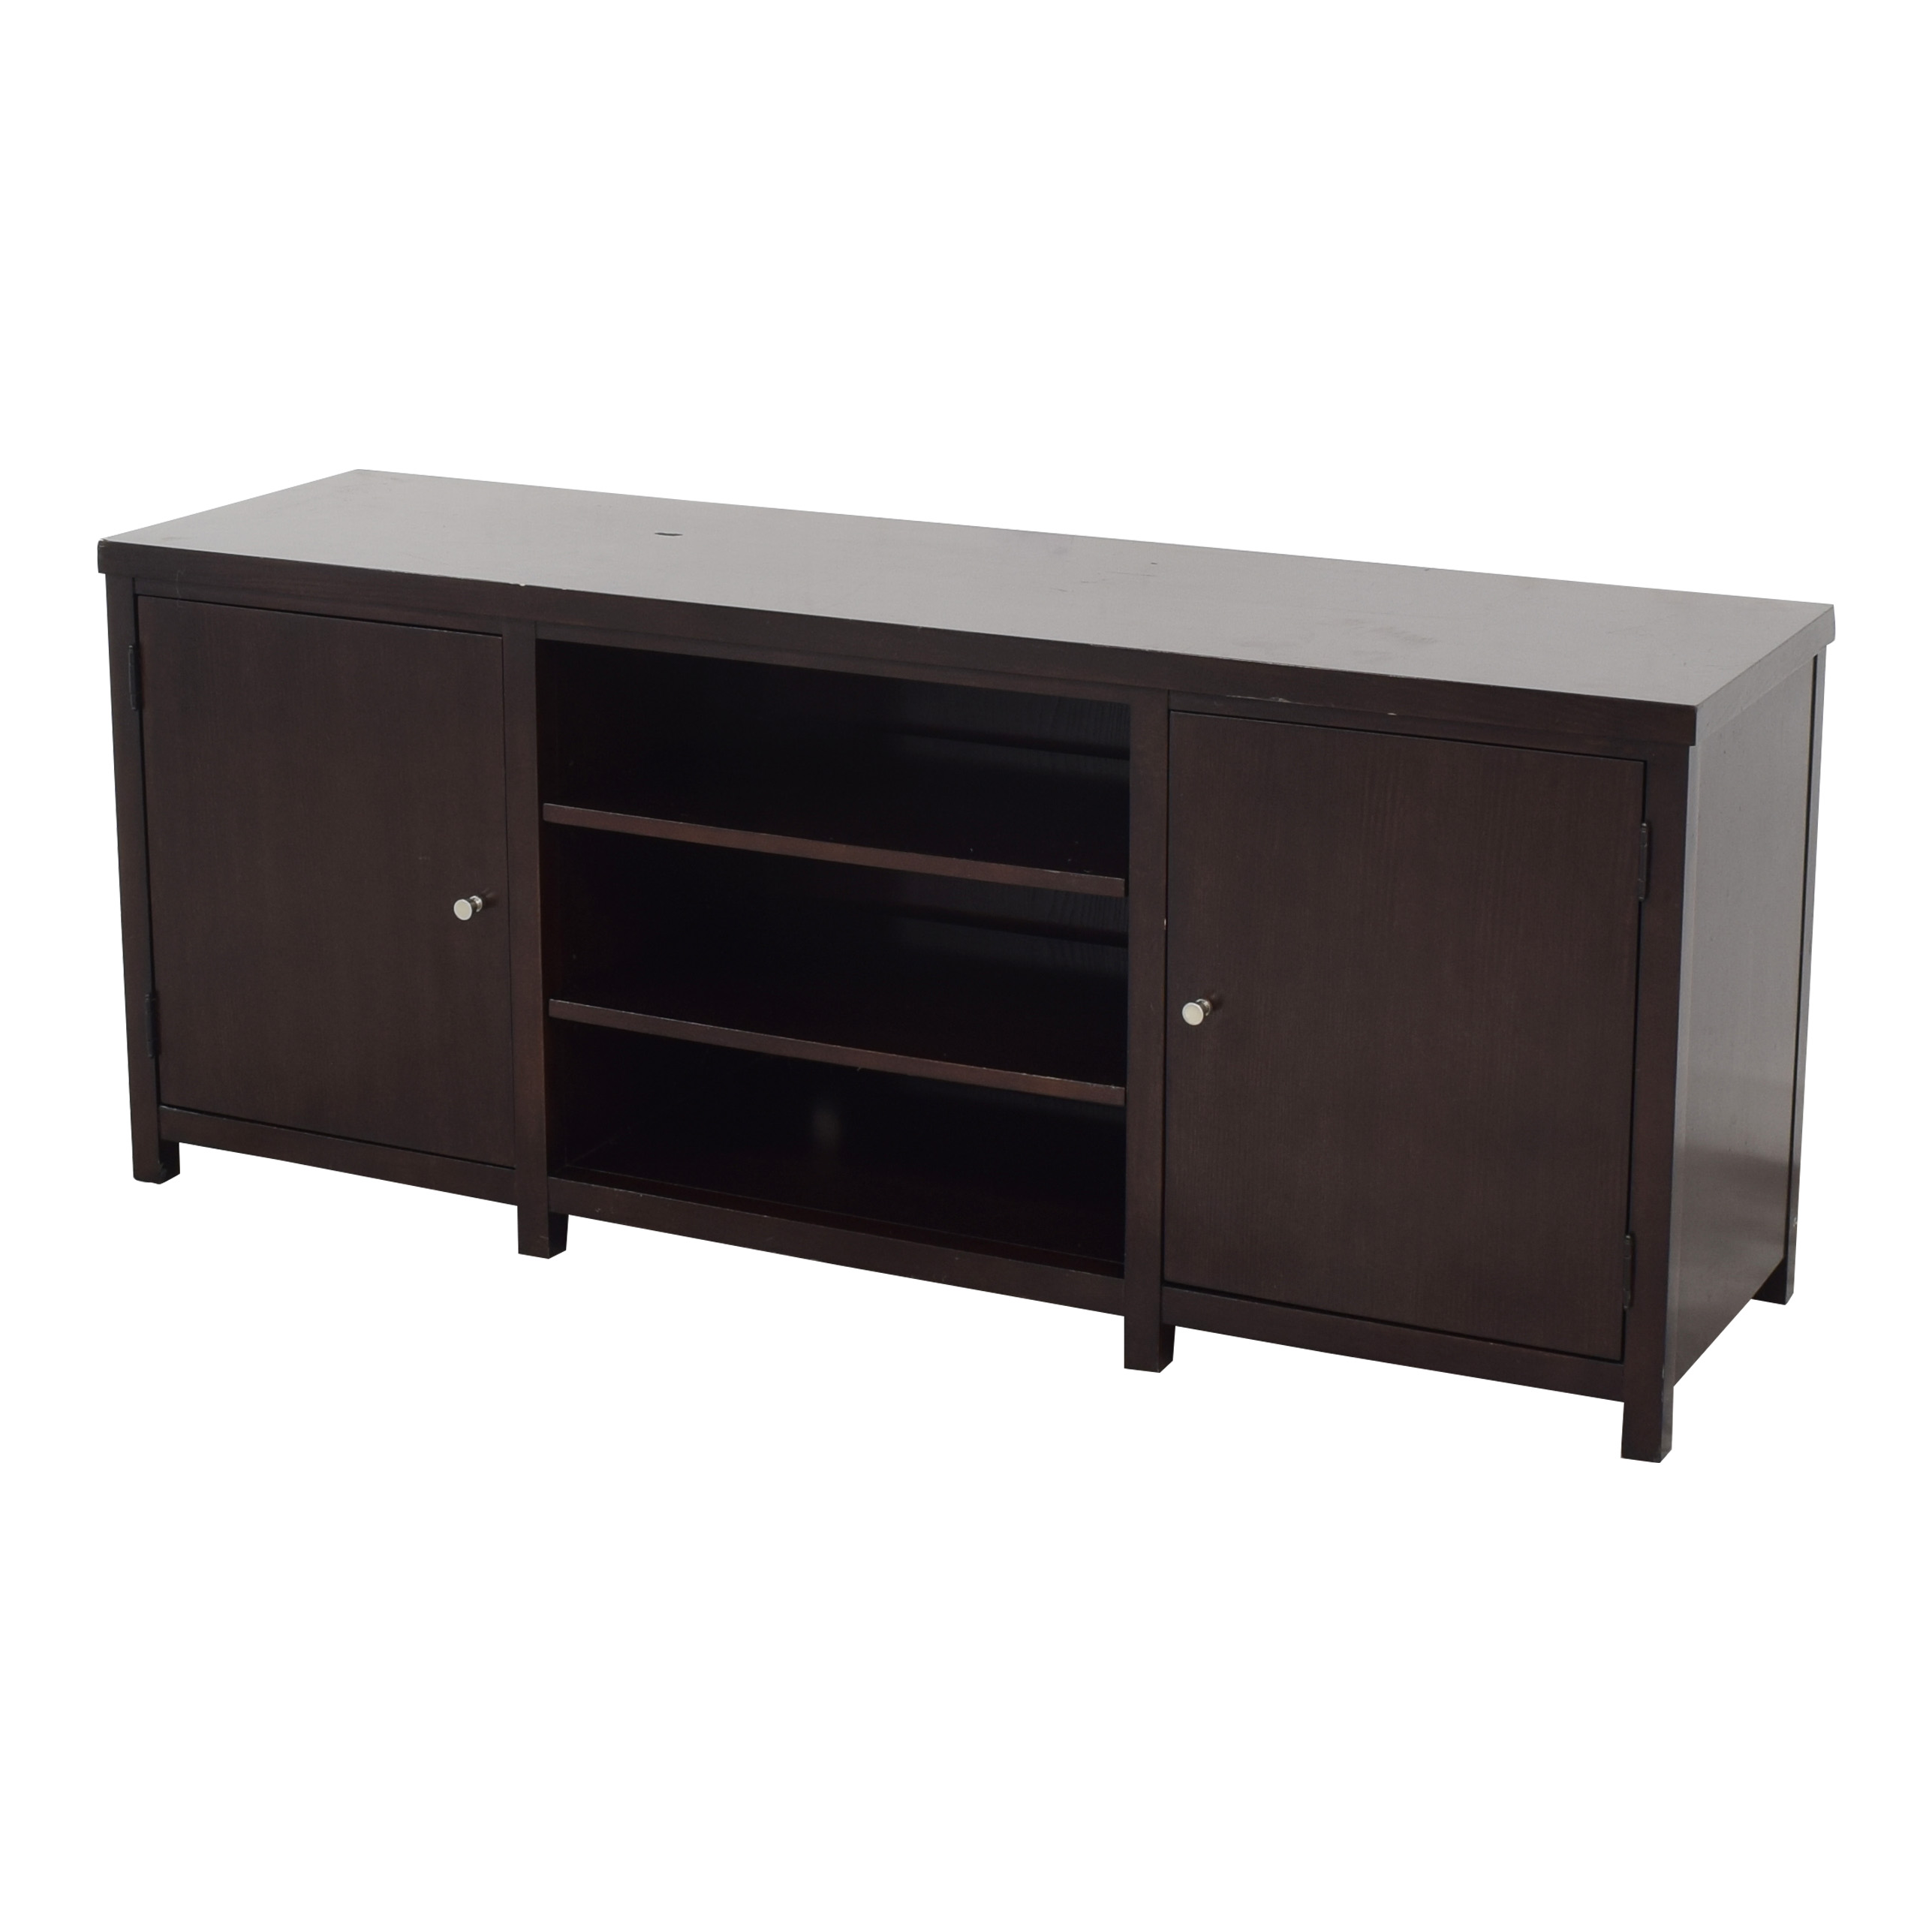 Mitchell Gold + Bob Williams Mitchell Gold + Bob Williams Media Console Storage